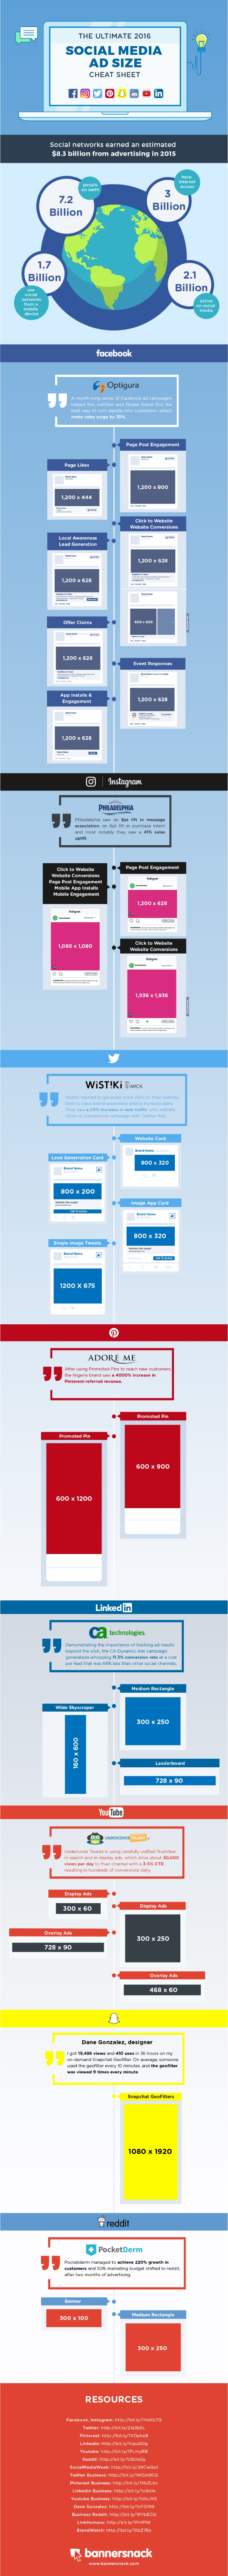 bannersnack-social-media-ad-sizes-a-cheat-sheet